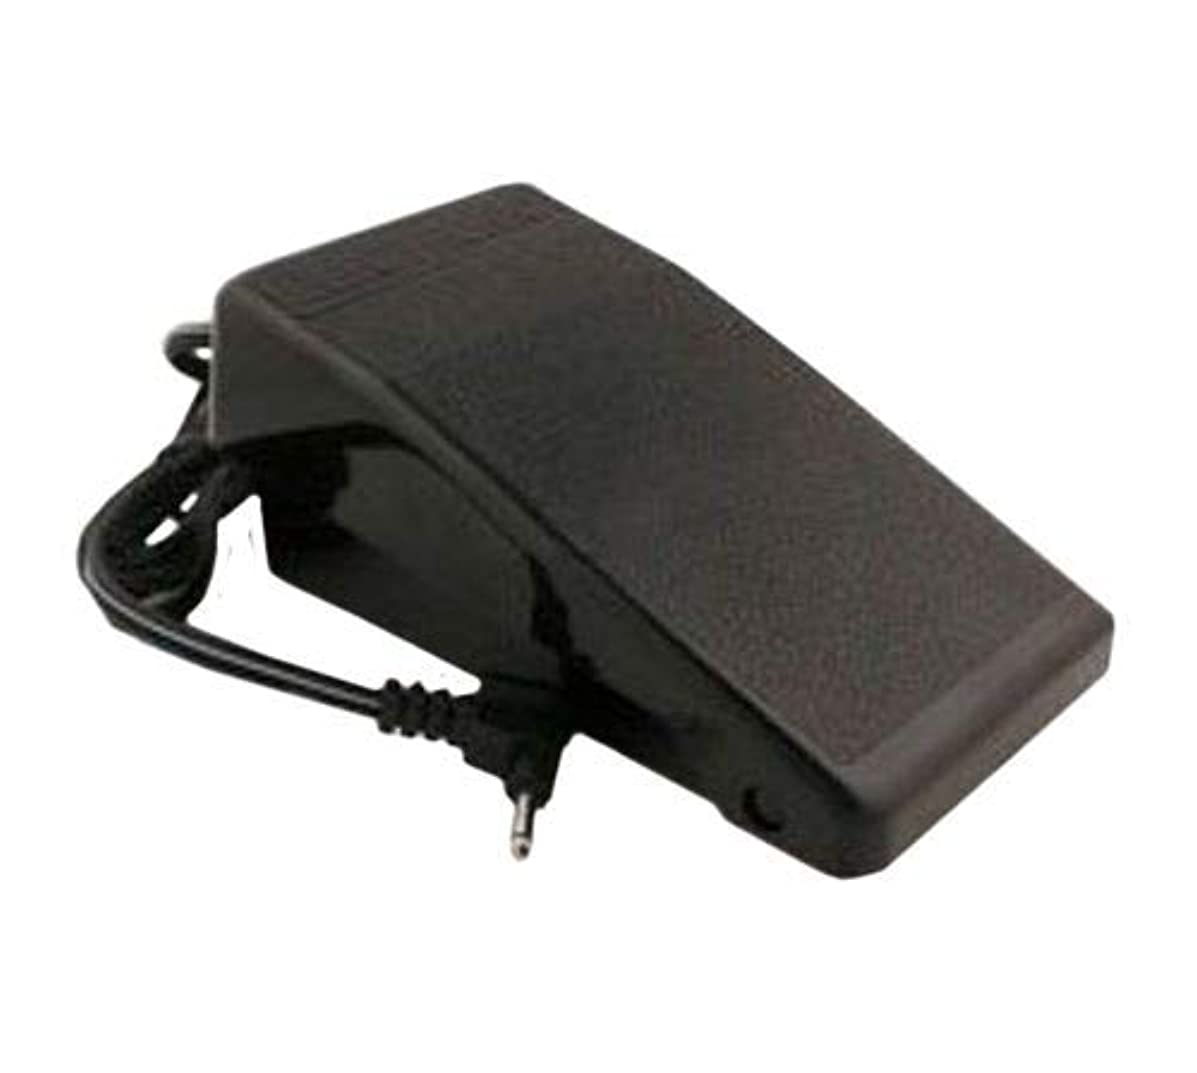 Foot Control Pedal XC6651121 - Brother, Baby Lock